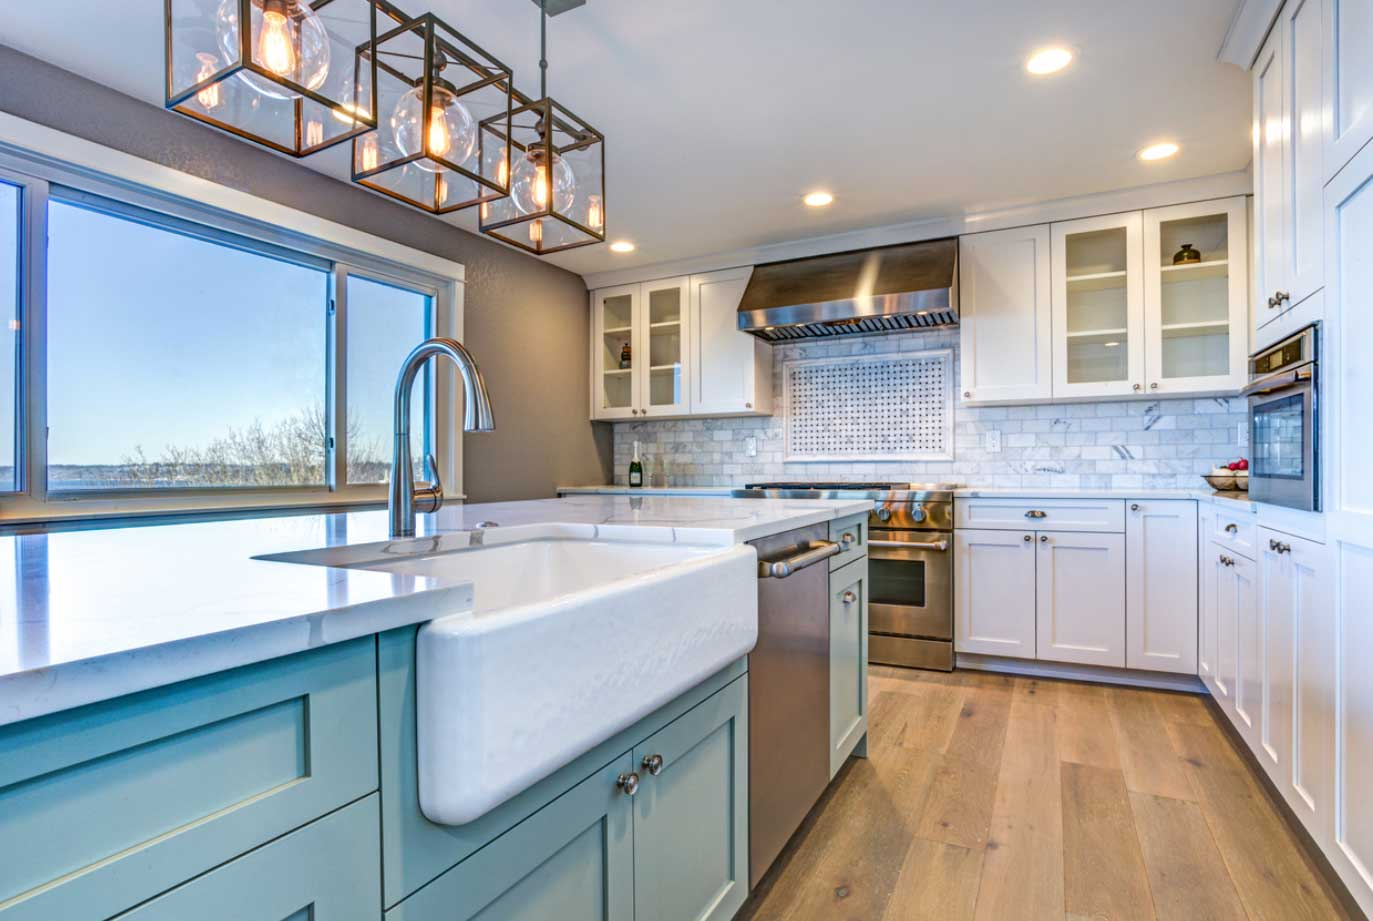 Shaker Style Kitchen Cabinet Remodel